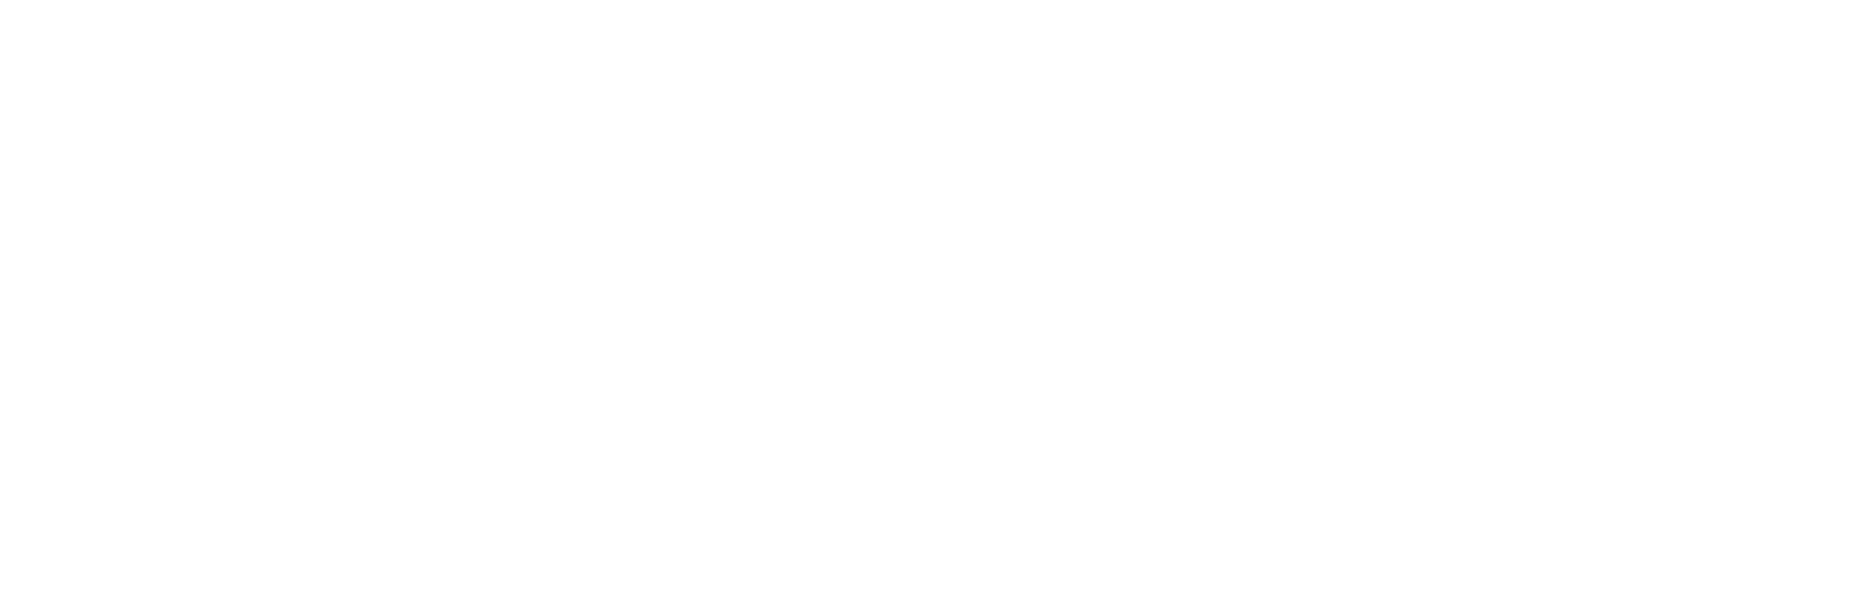 Bandsintown_data-experience-Amplification_icons-02.png